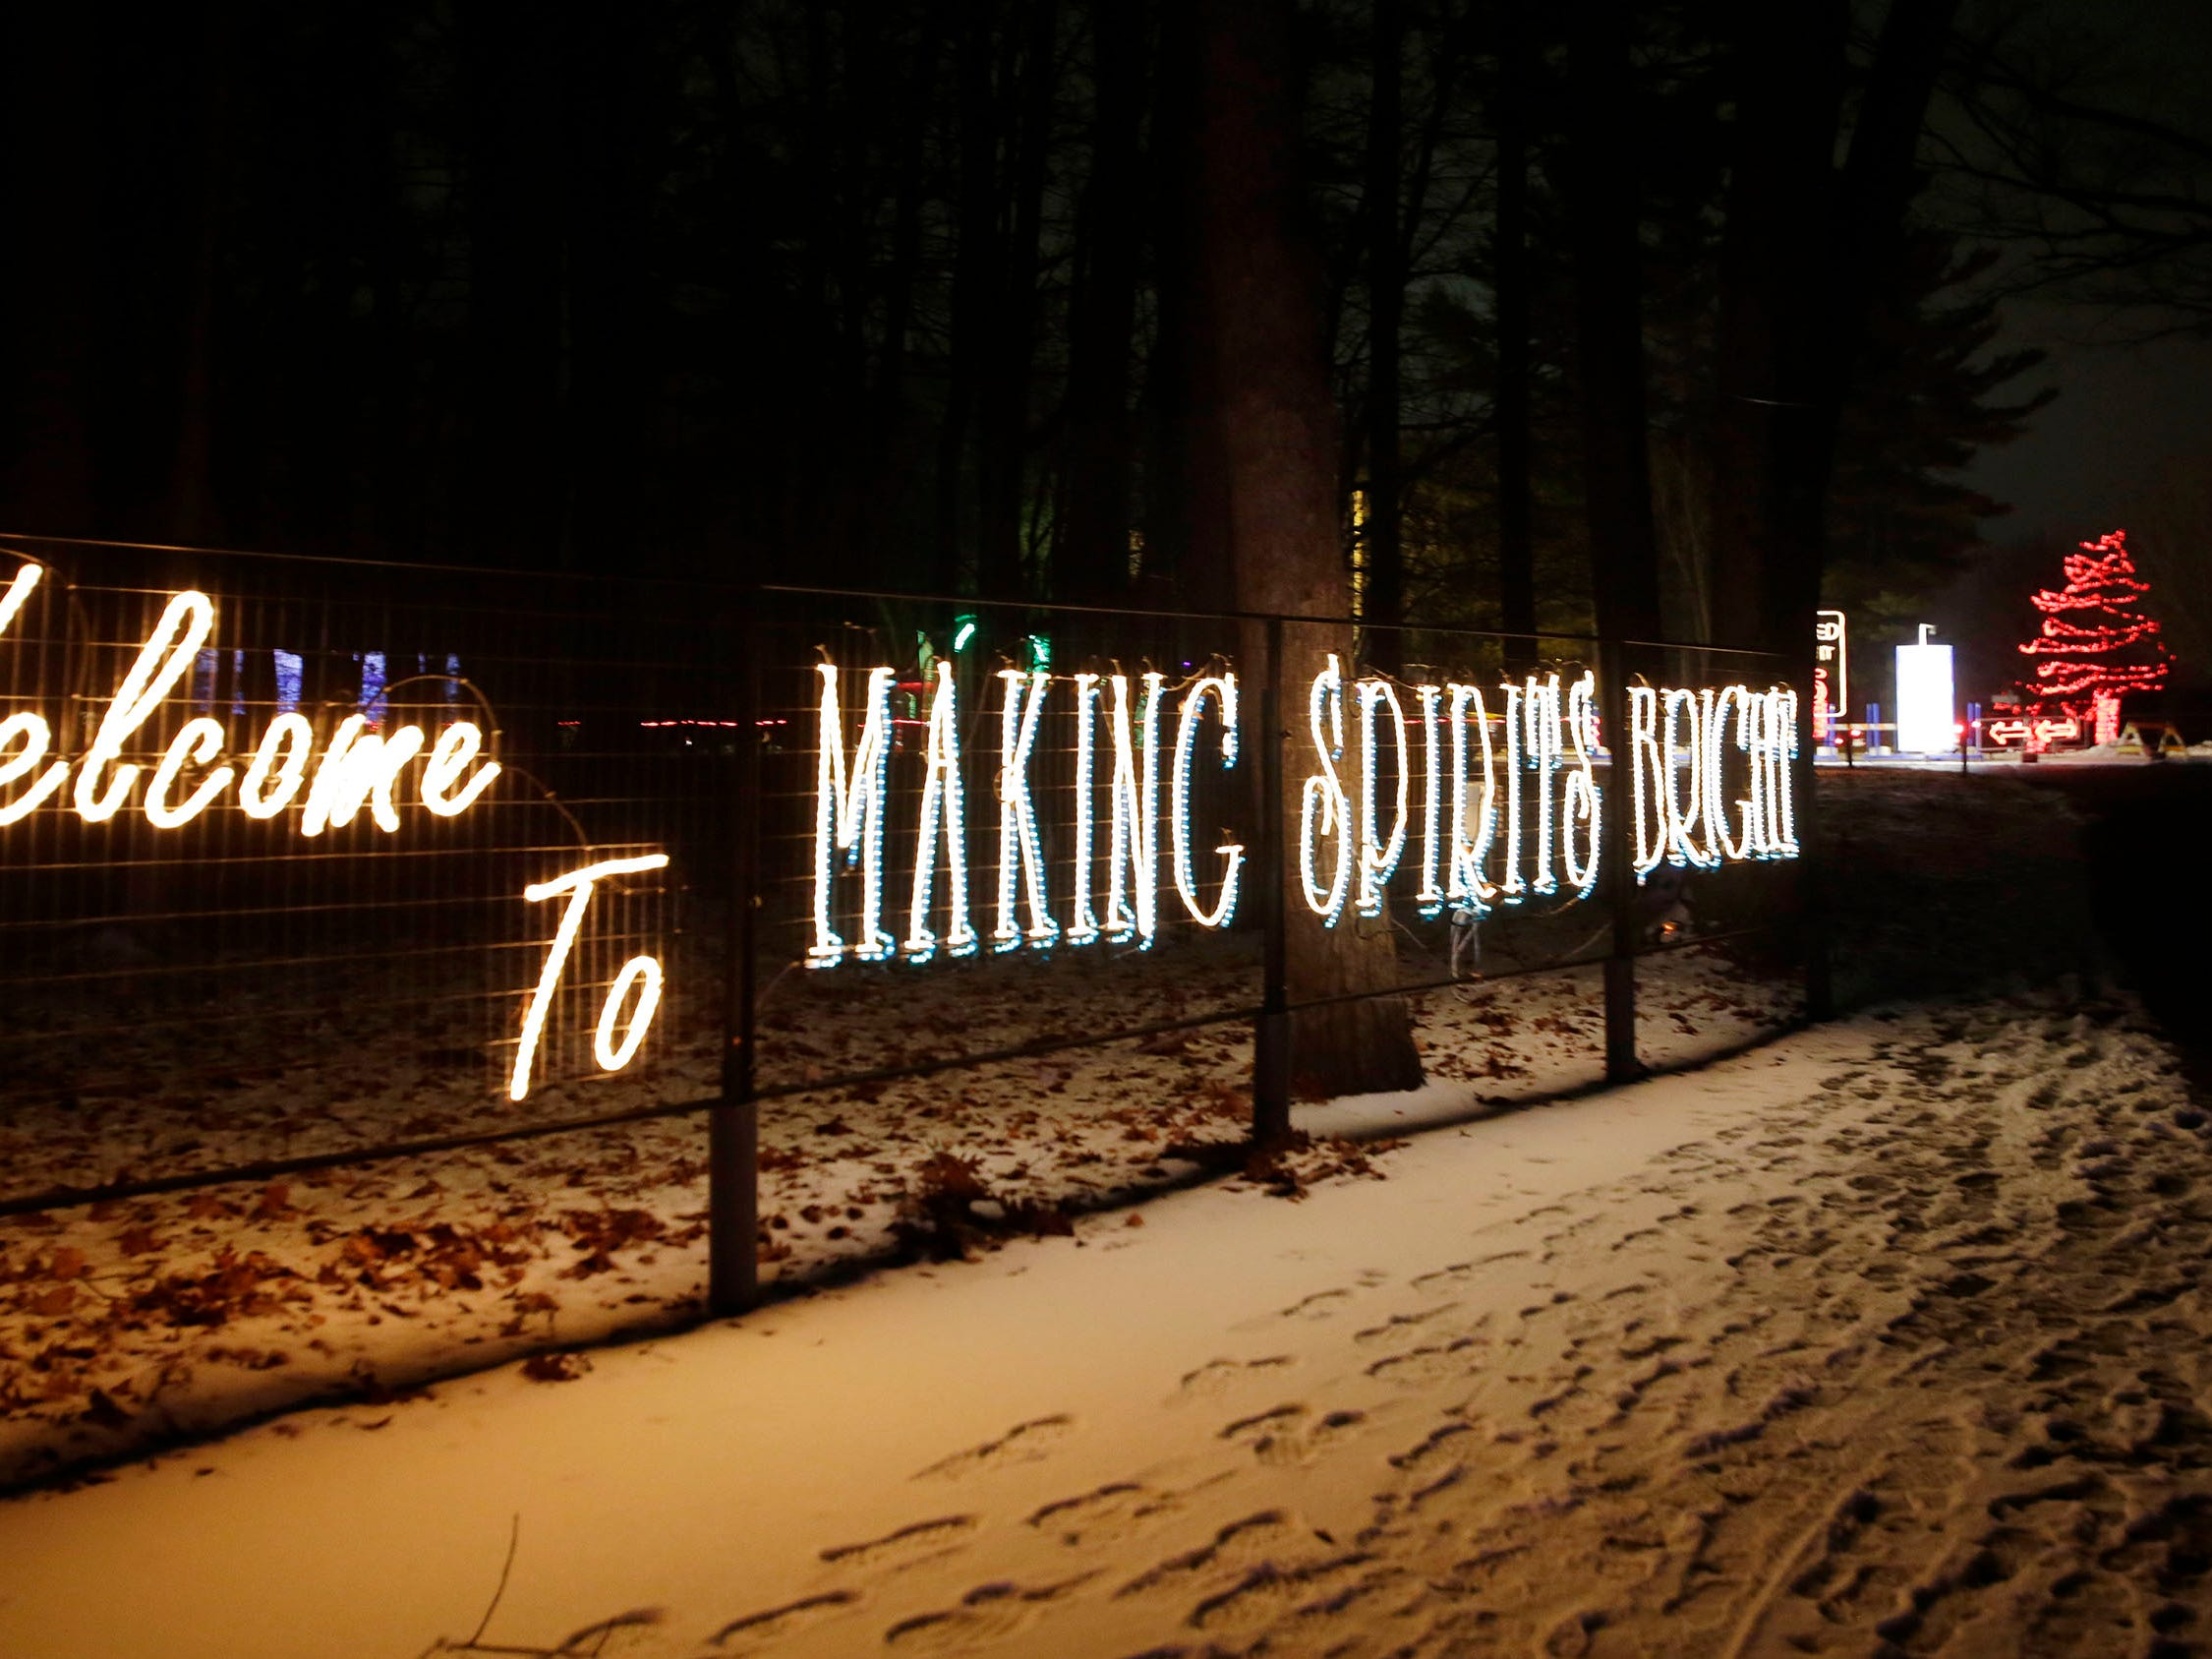 People are welcomed at a sign at Making Spirits Bright at Evergreen Park, Friday, November 30, 2018, in Sheboygan, Wis.